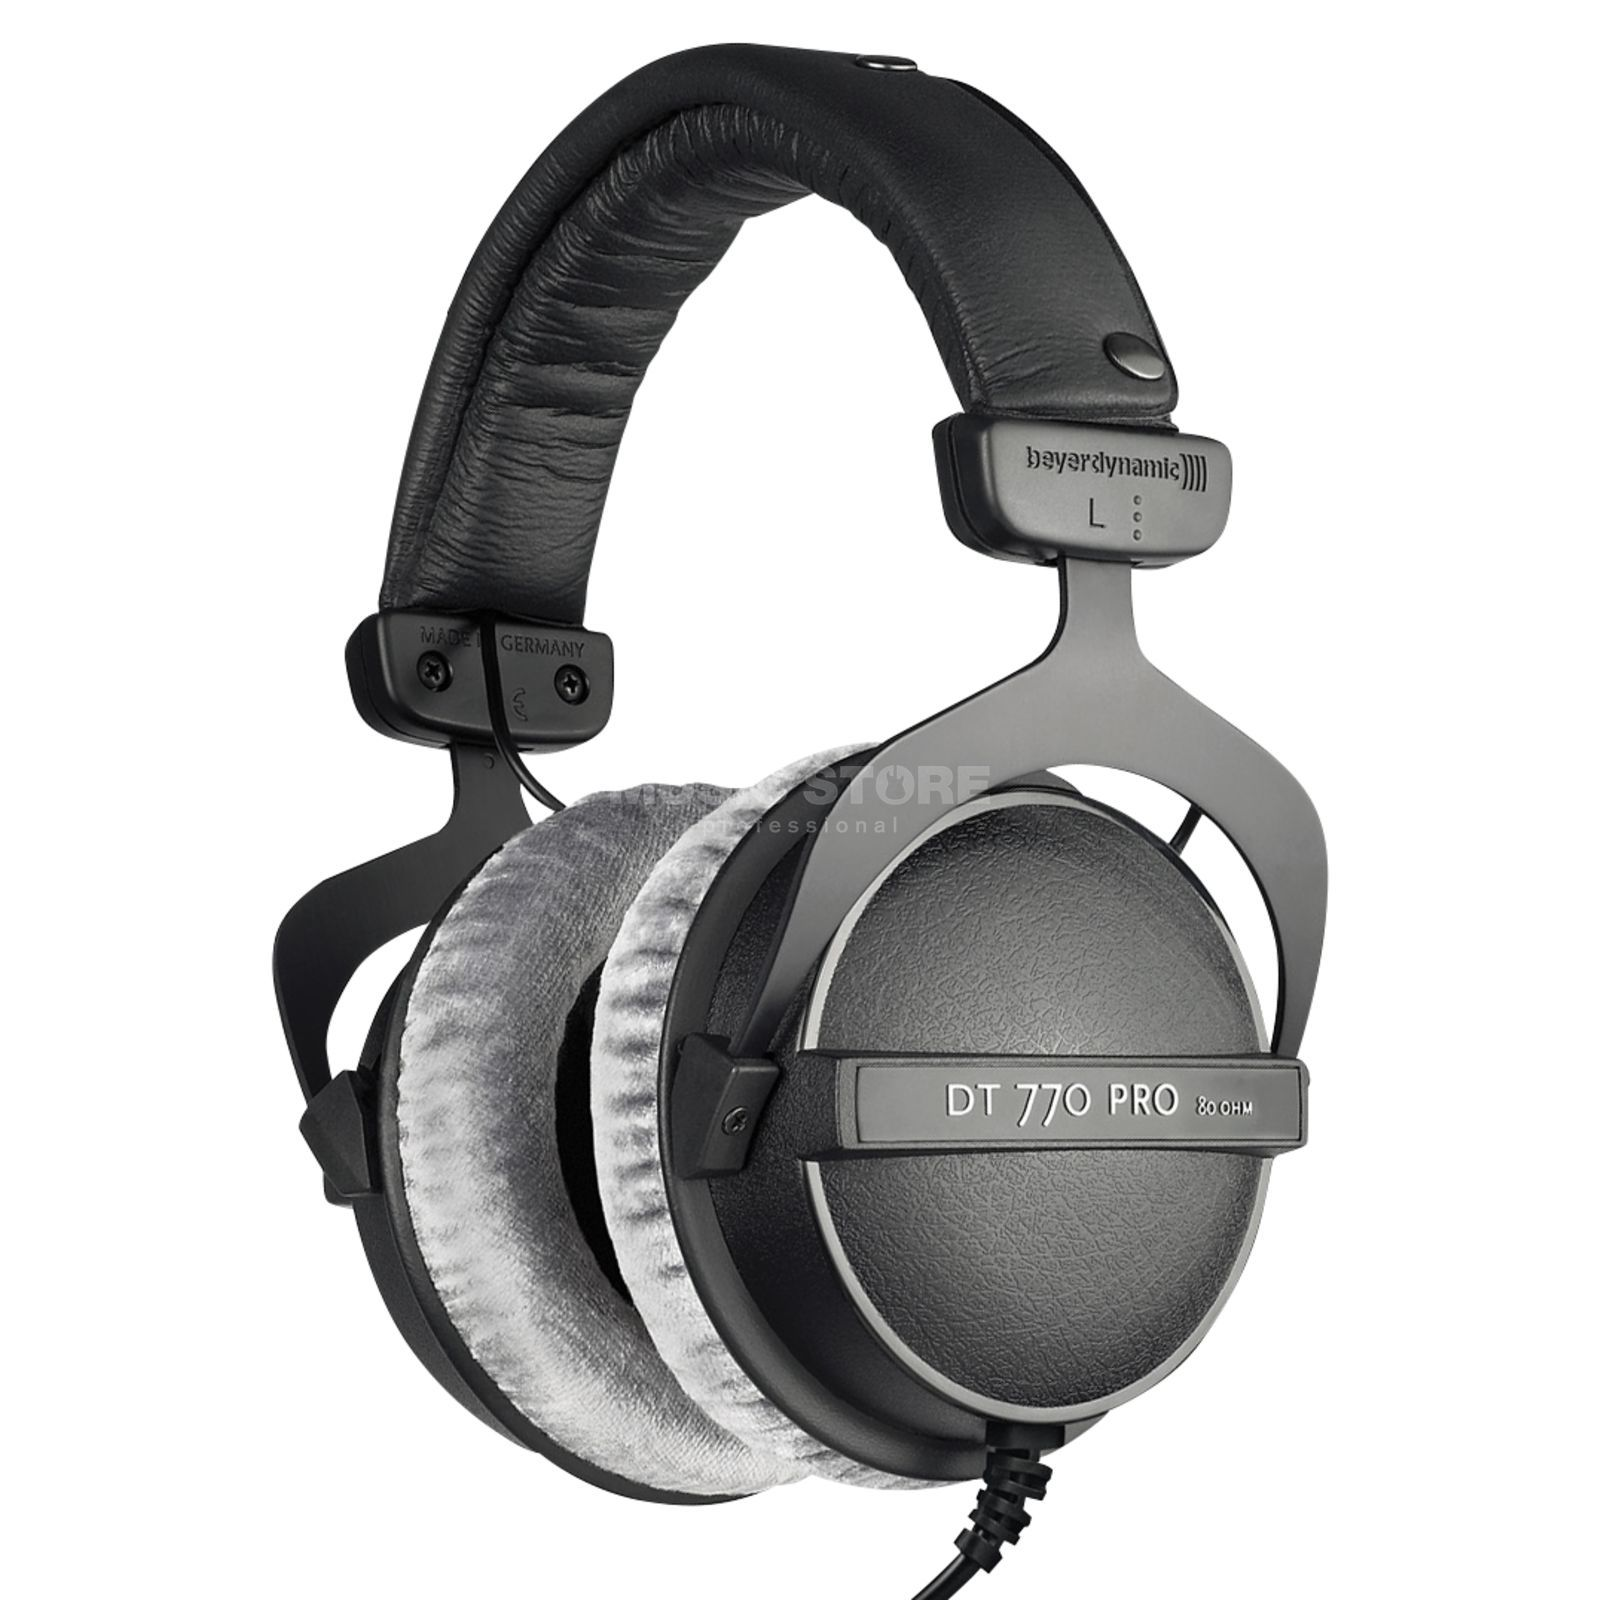 beyerdynamic dt 770 pro 80 ohm closed studio headphones. Black Bedroom Furniture Sets. Home Design Ideas